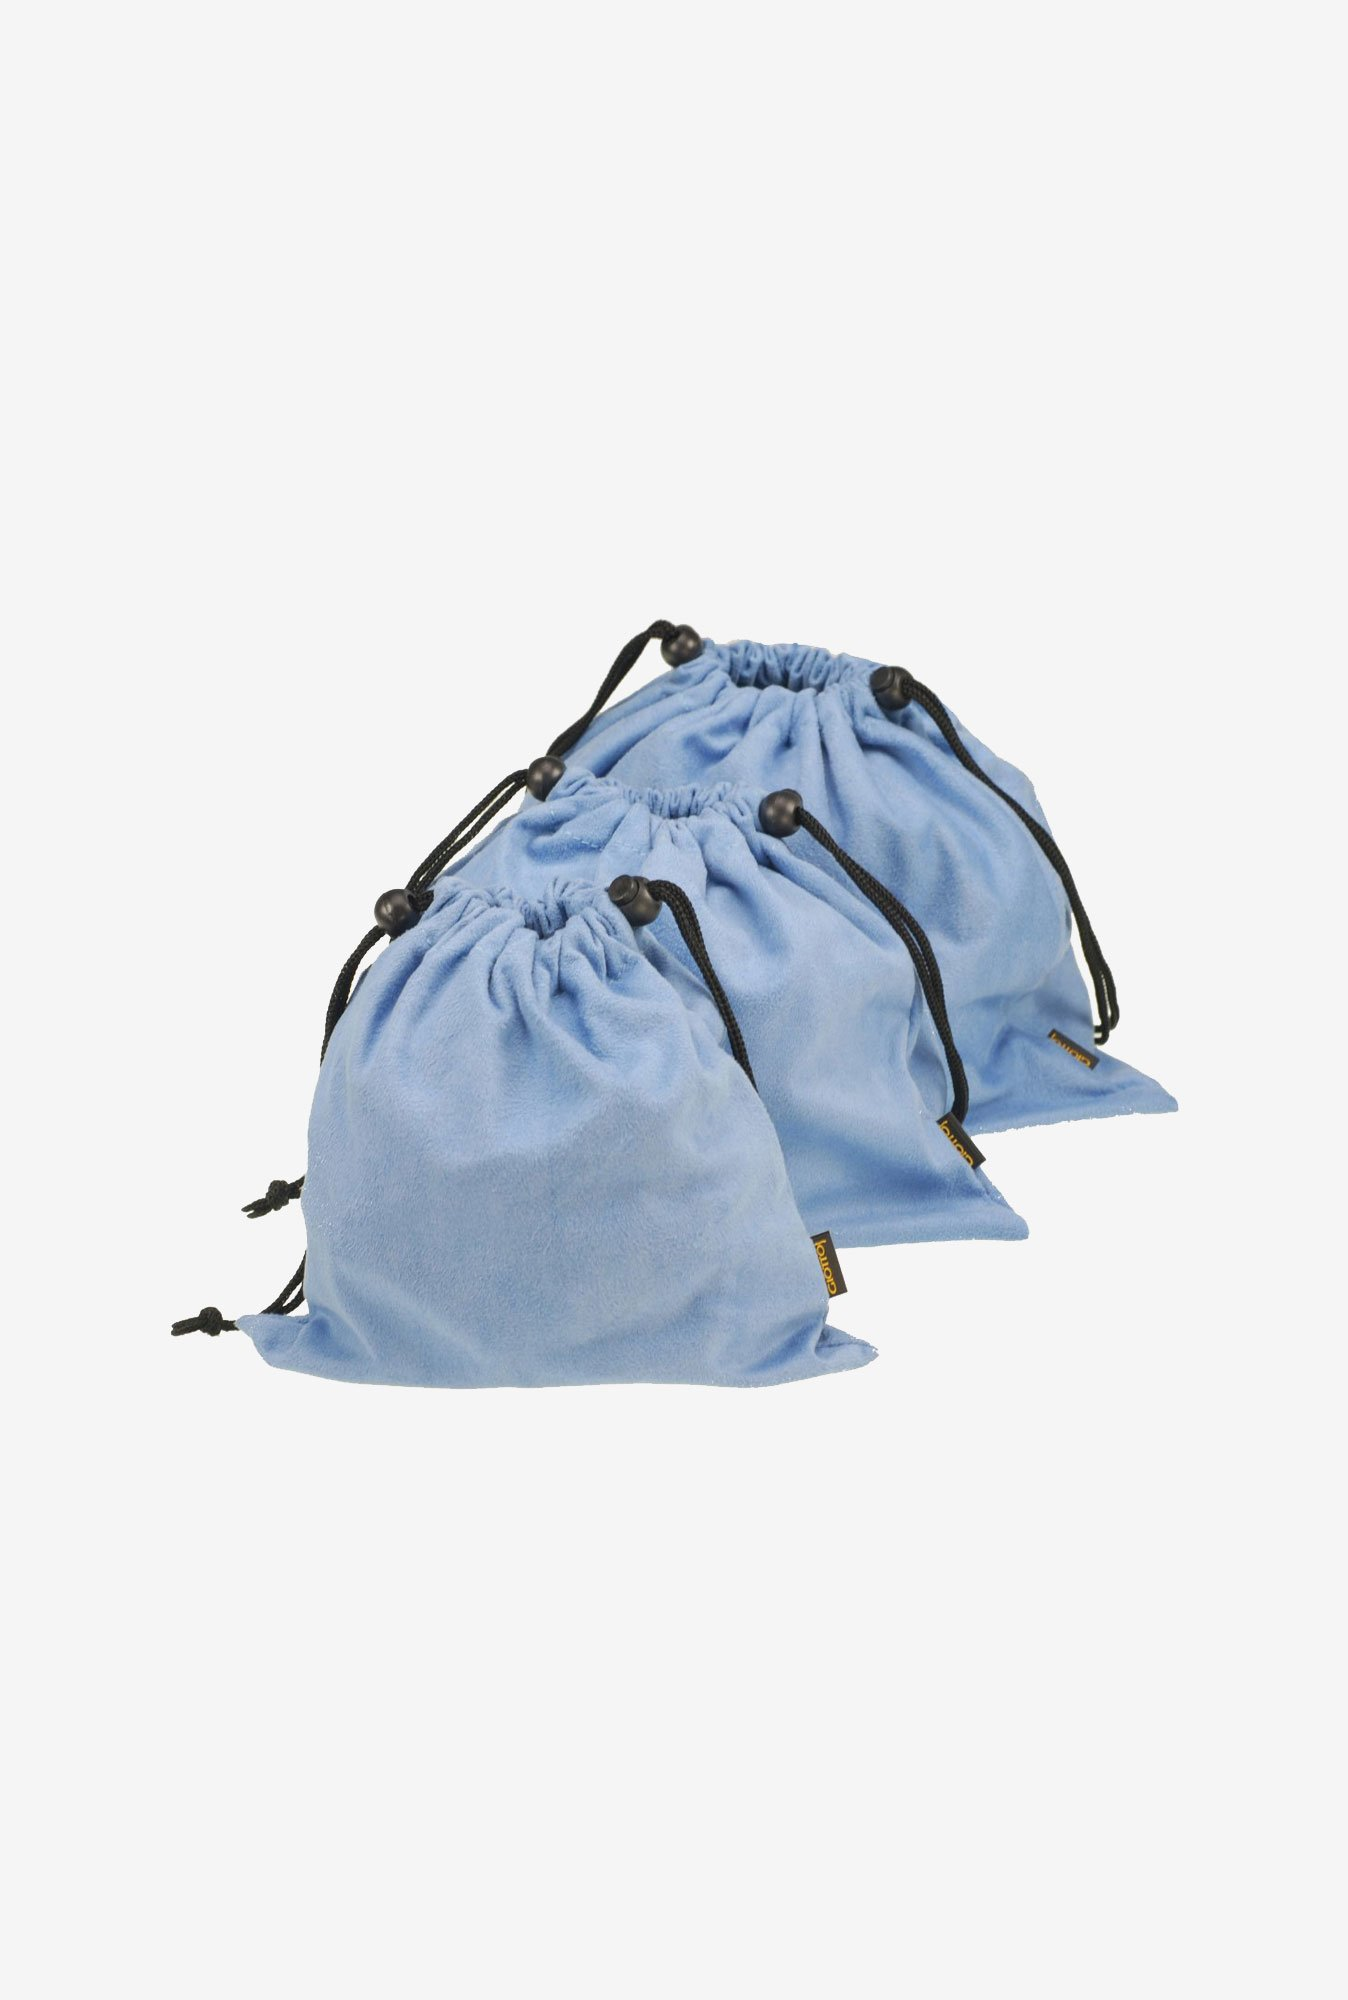 "Giottos CL3626 9.8x7.9"" Pouch (Light Blue)"